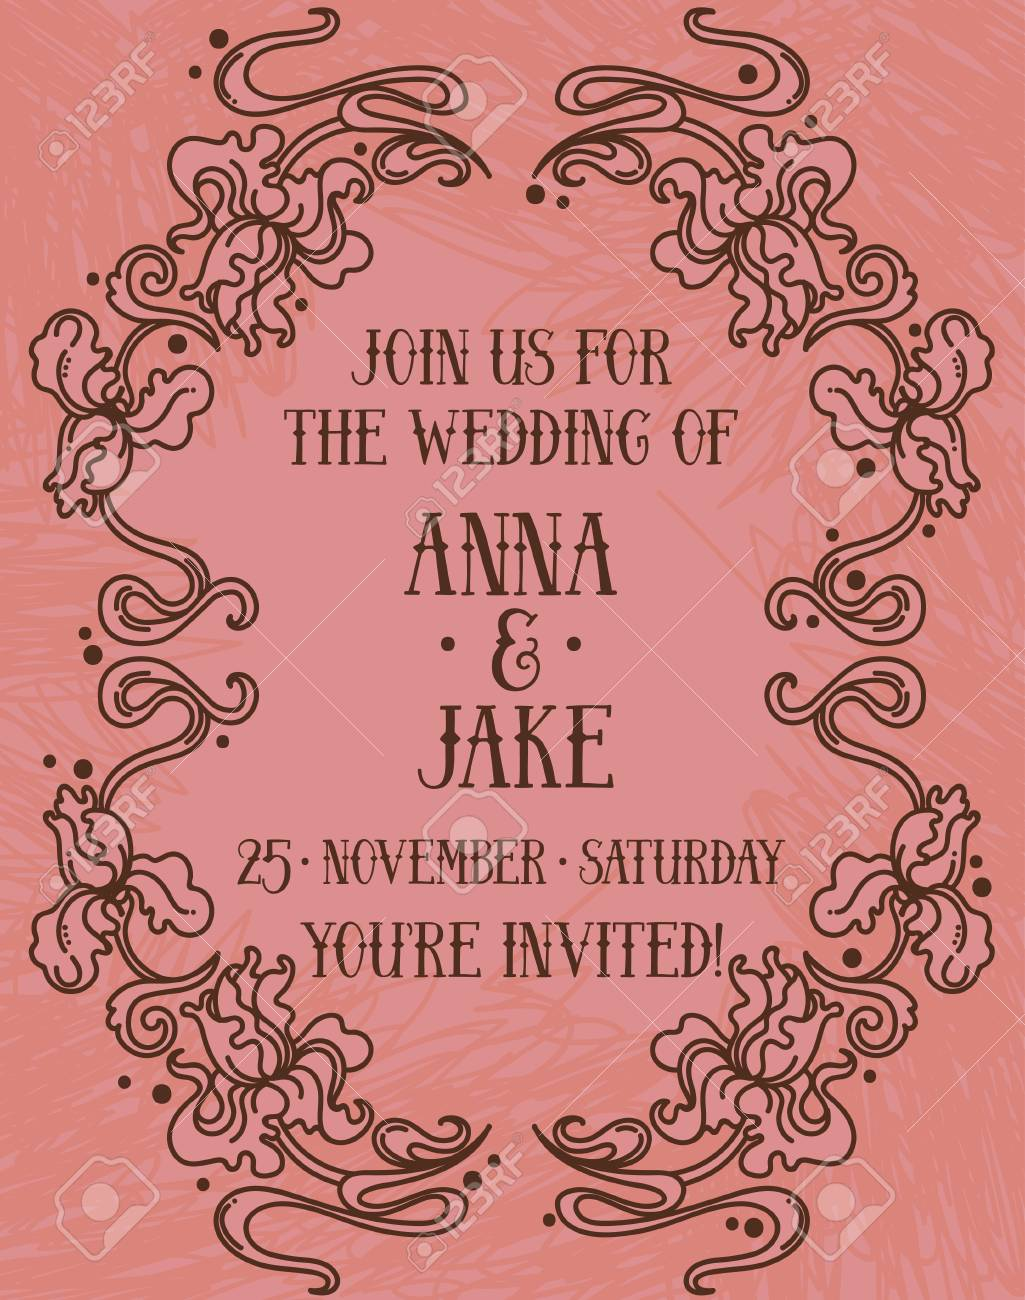 Nice Wedding Invitations Indianapolis Images - Invitations and ...